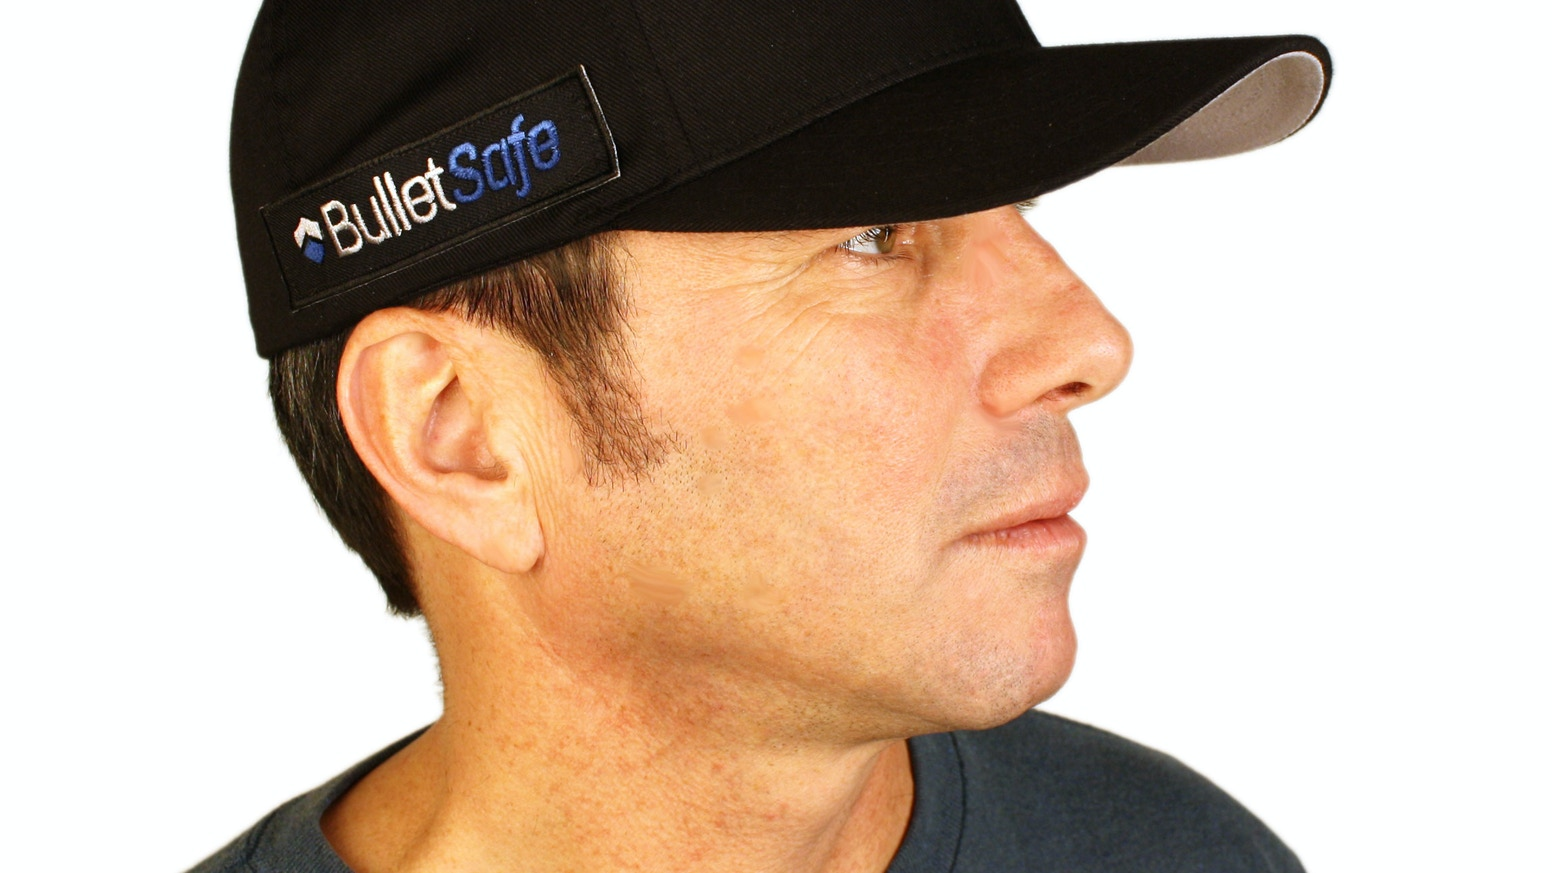 The BulletSafe Bulletproof Baseball Cap offers protection without intimidation.